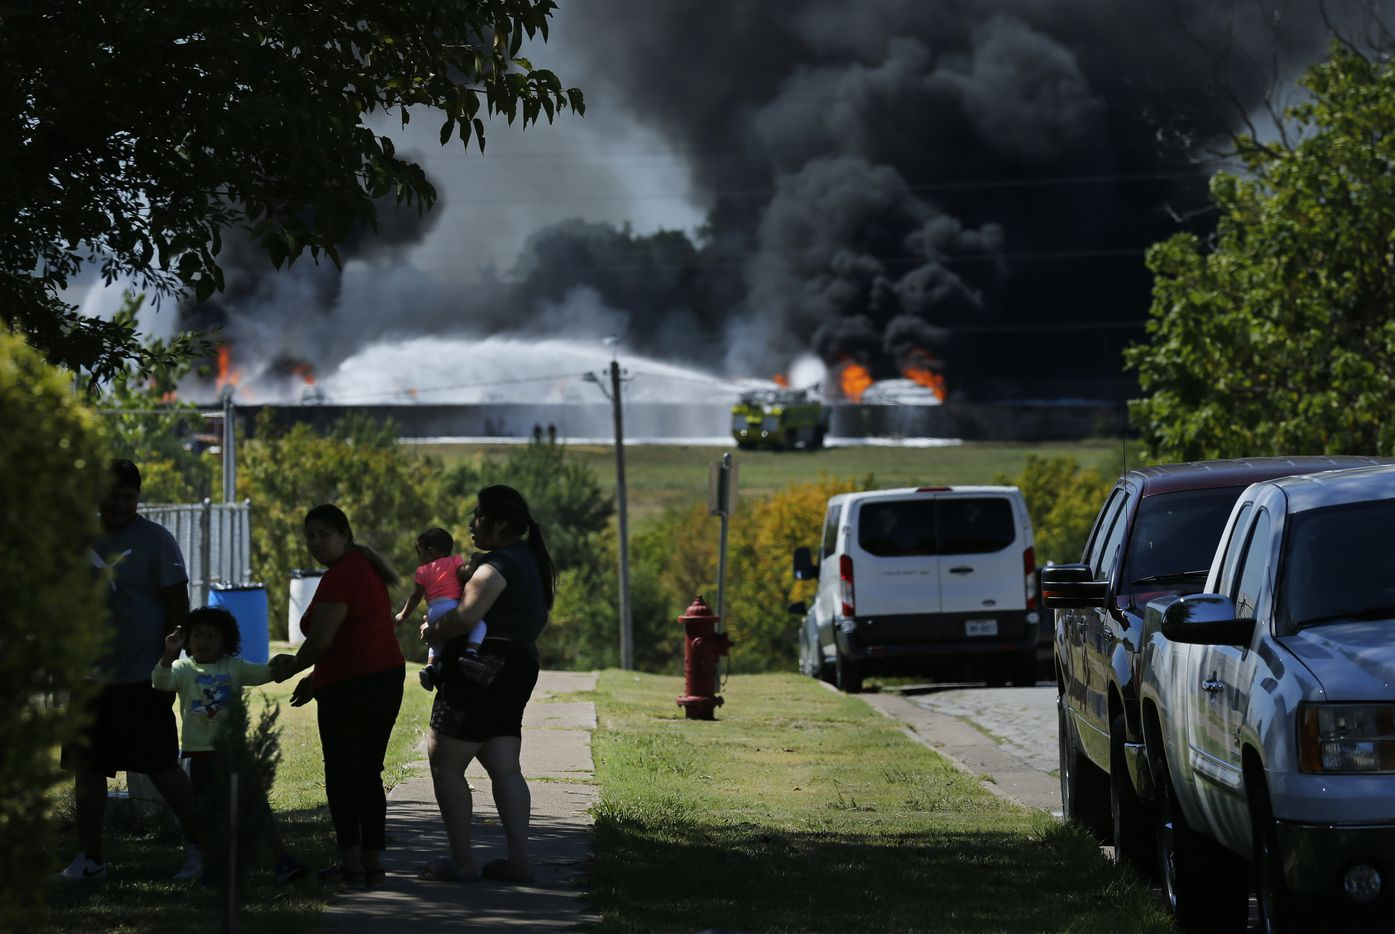 Black smoke from burning plastic billows at Poly-America as nearby neighbors came out to check on the fire burning at 2000 West Marshall Drive in Grand Prairie, Texas, Wednesday, August 19, 2020.